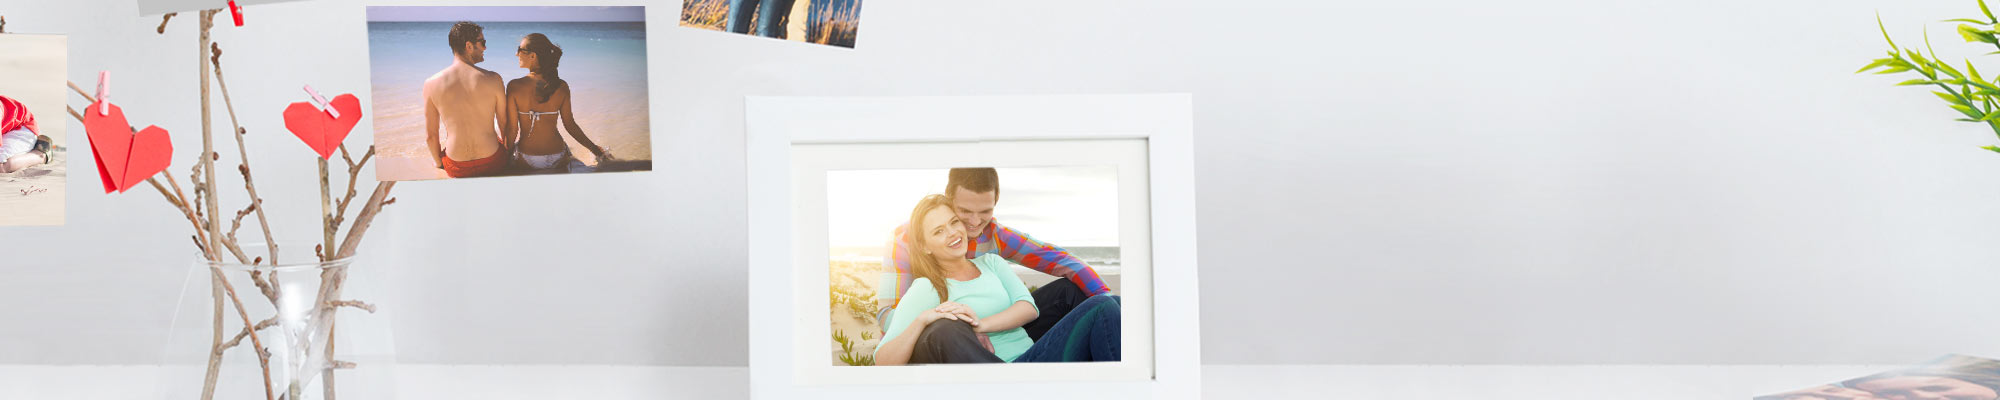 Photo Prints : Millions have trusted their precious photos to Truprint. Dedicated to delivering your prints, simply and at great value.